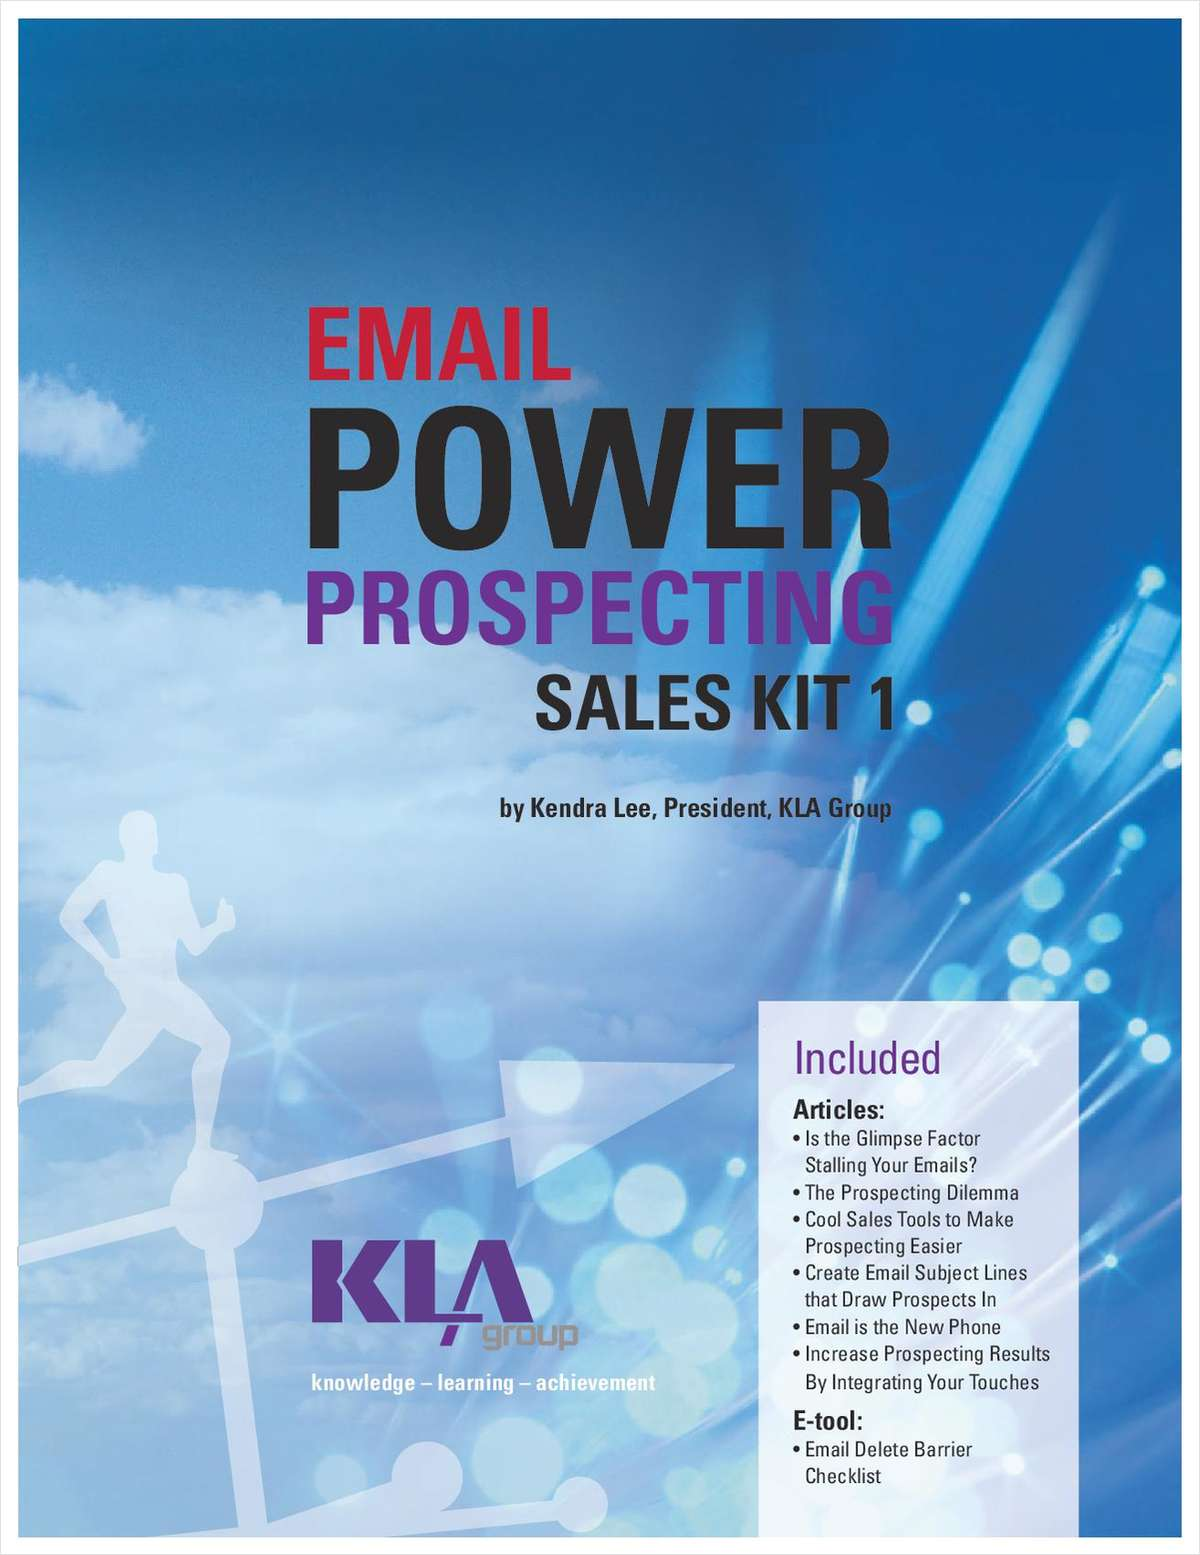 Email Power Prospecting Sales Kit